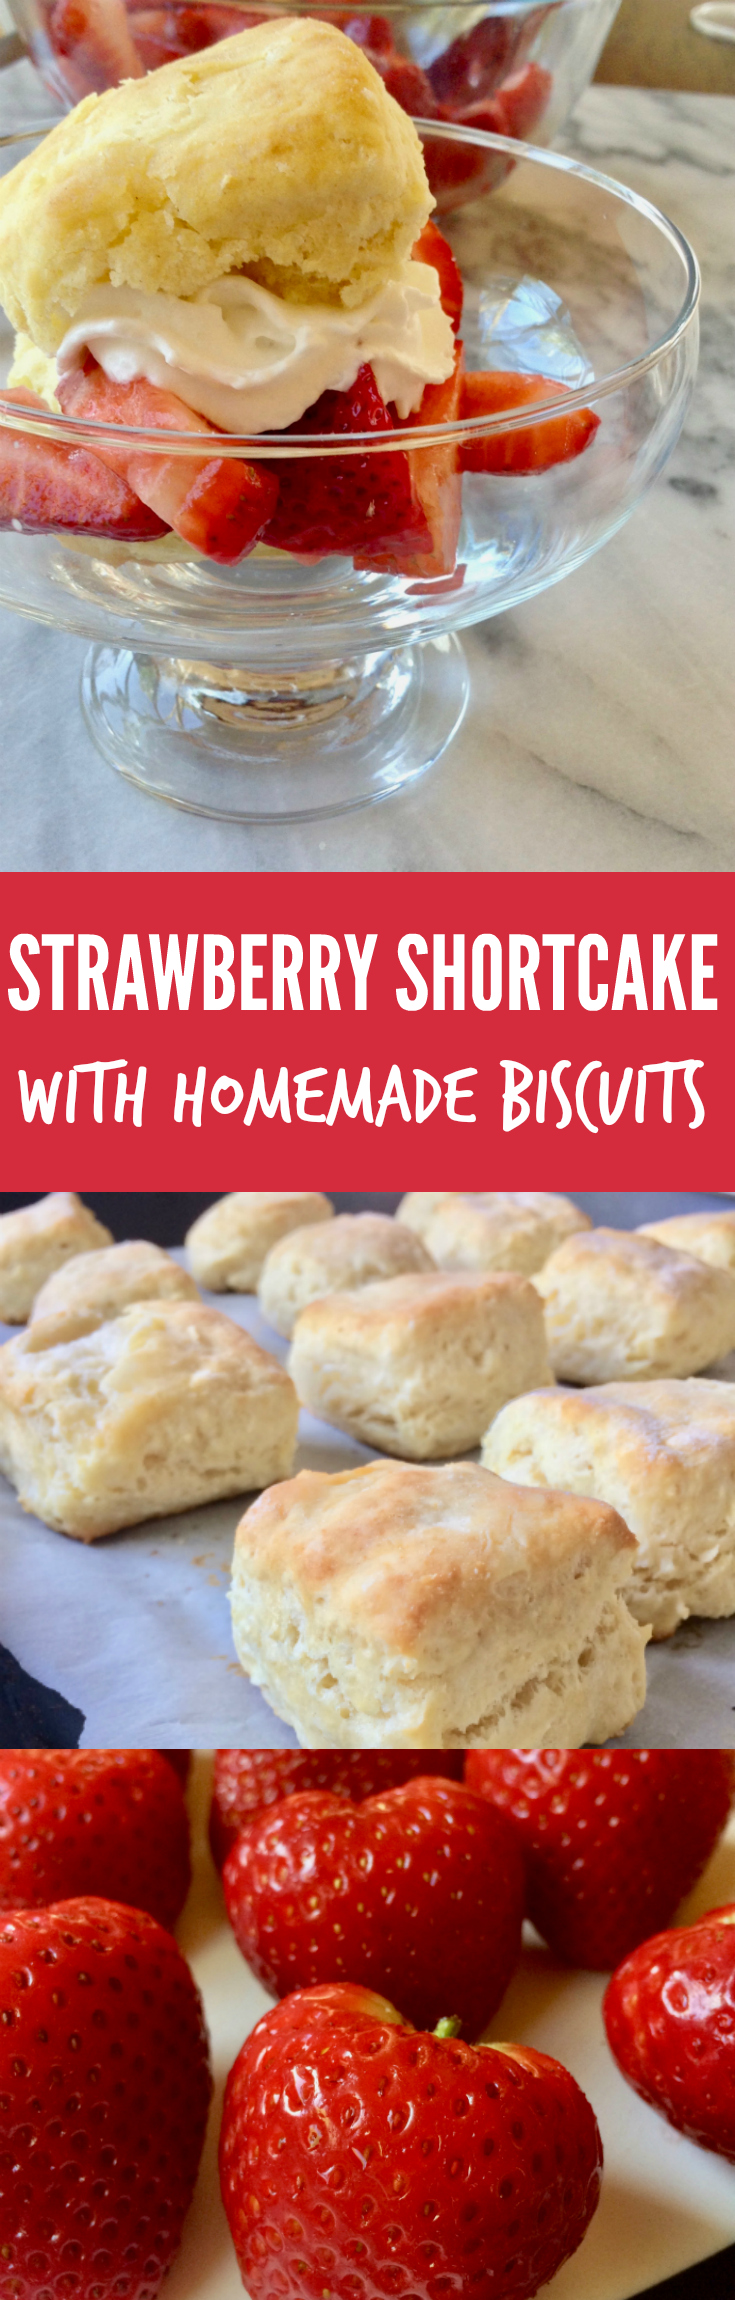 Strawberry Shortcake with Quick Biscuits